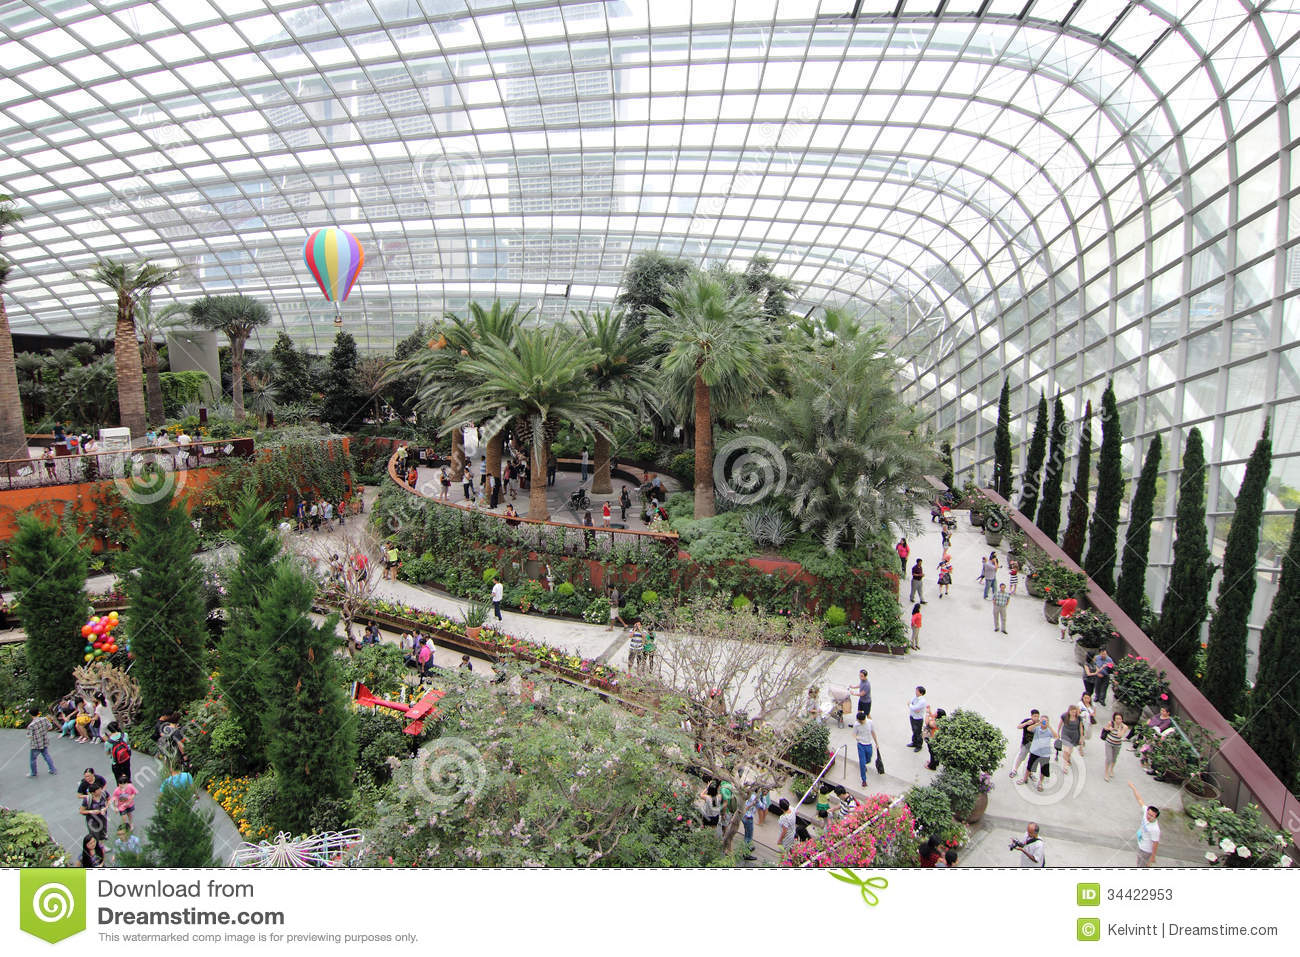 Garden By The Bay Flower Dome flower dome, gardensthe bay editorial stock image - image